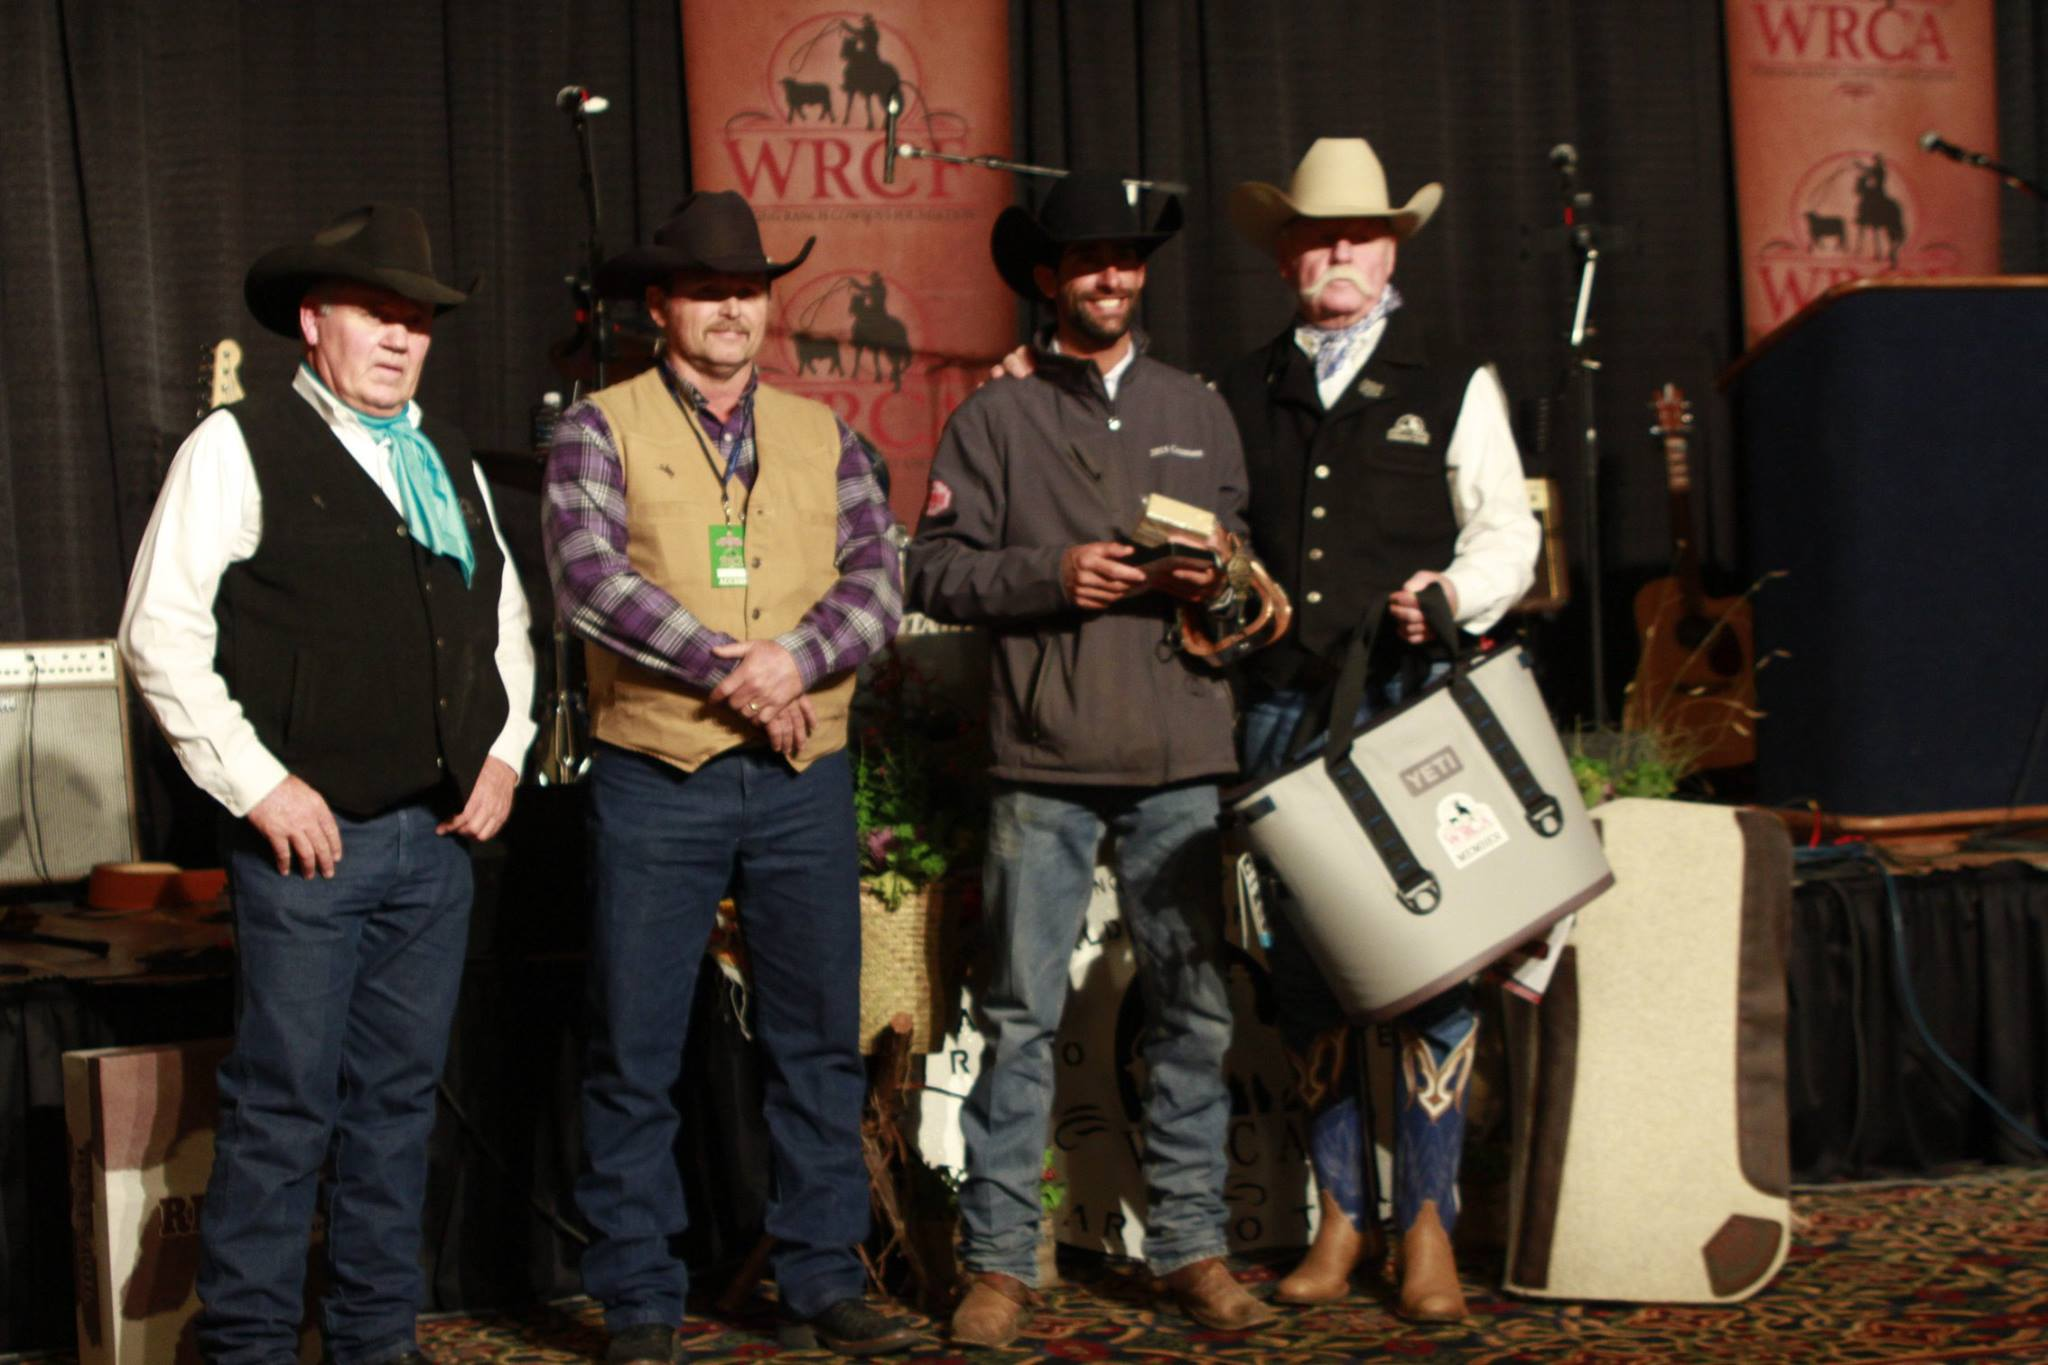 Top Hand - Tyler Rice, Sandhill Cattle Co.